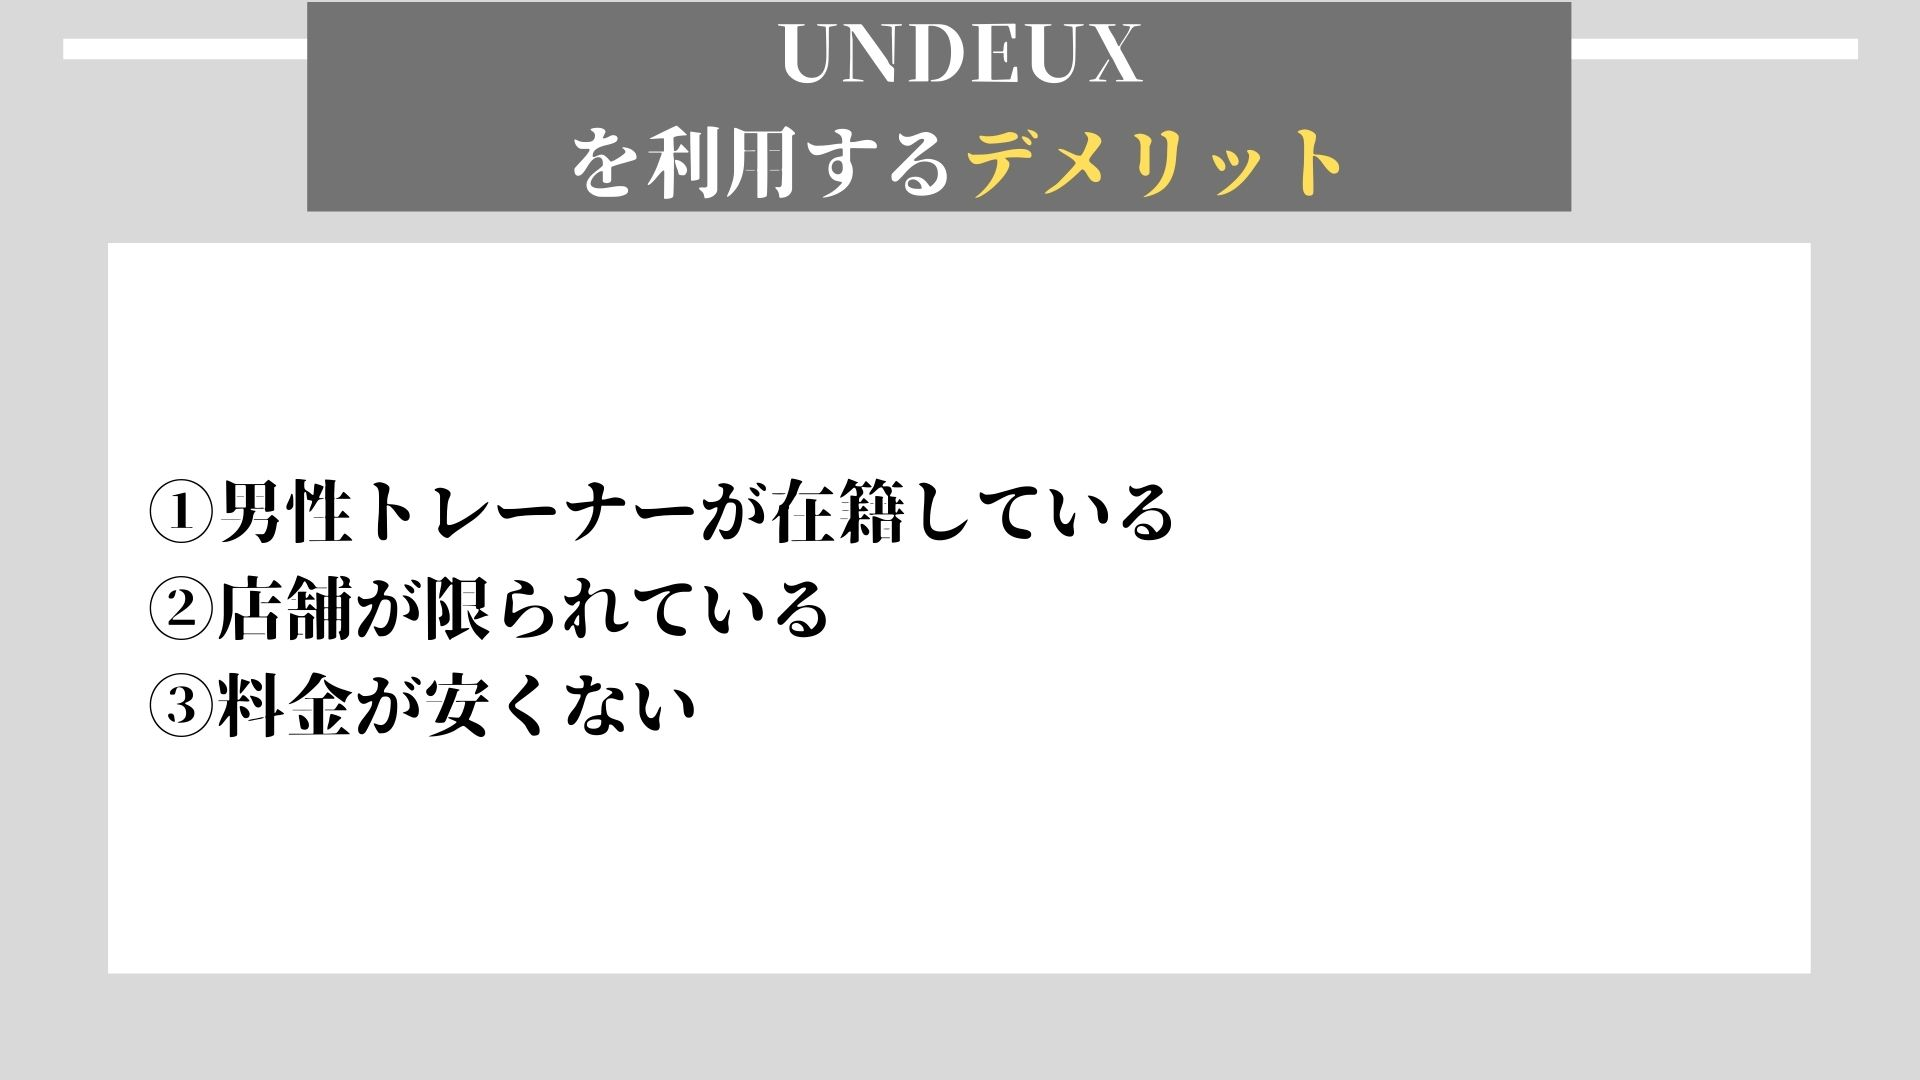 UNDEUX デメリット